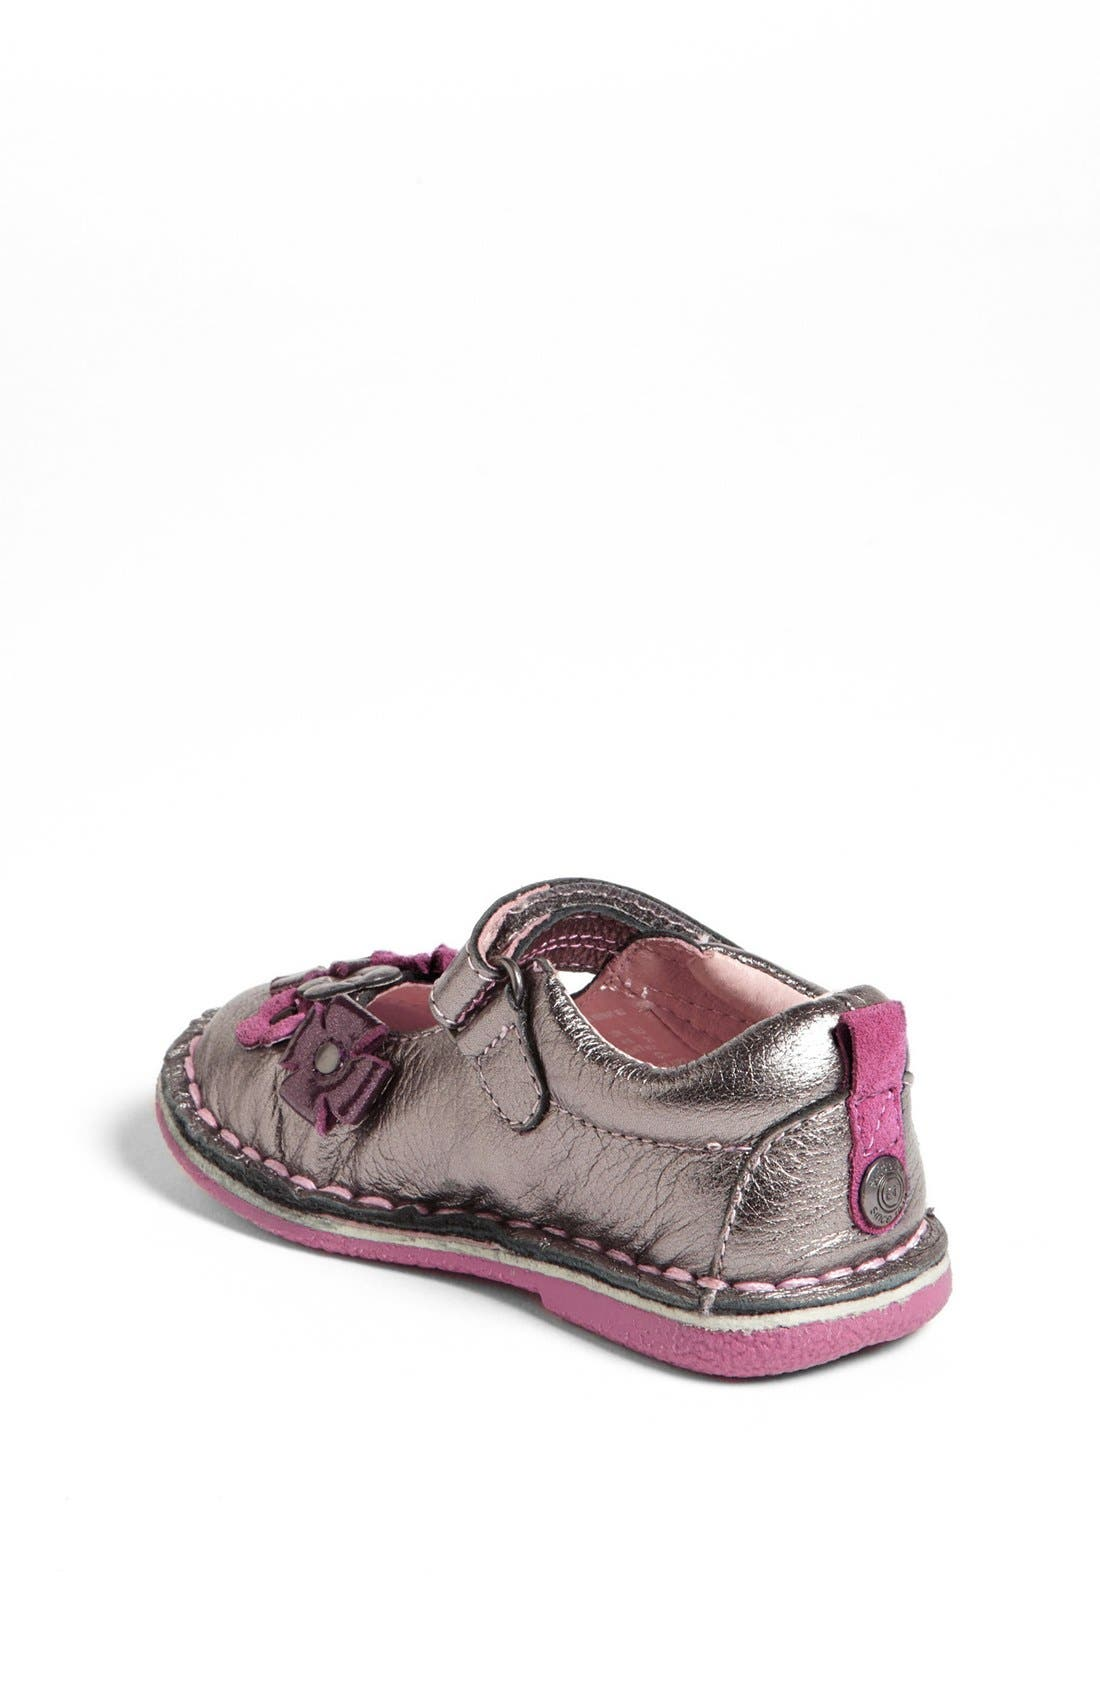 Alternate Image 2  - Stride Rite 'Medallion Collection - Kenway' Mary Jane (Baby, Walker & Toddler)